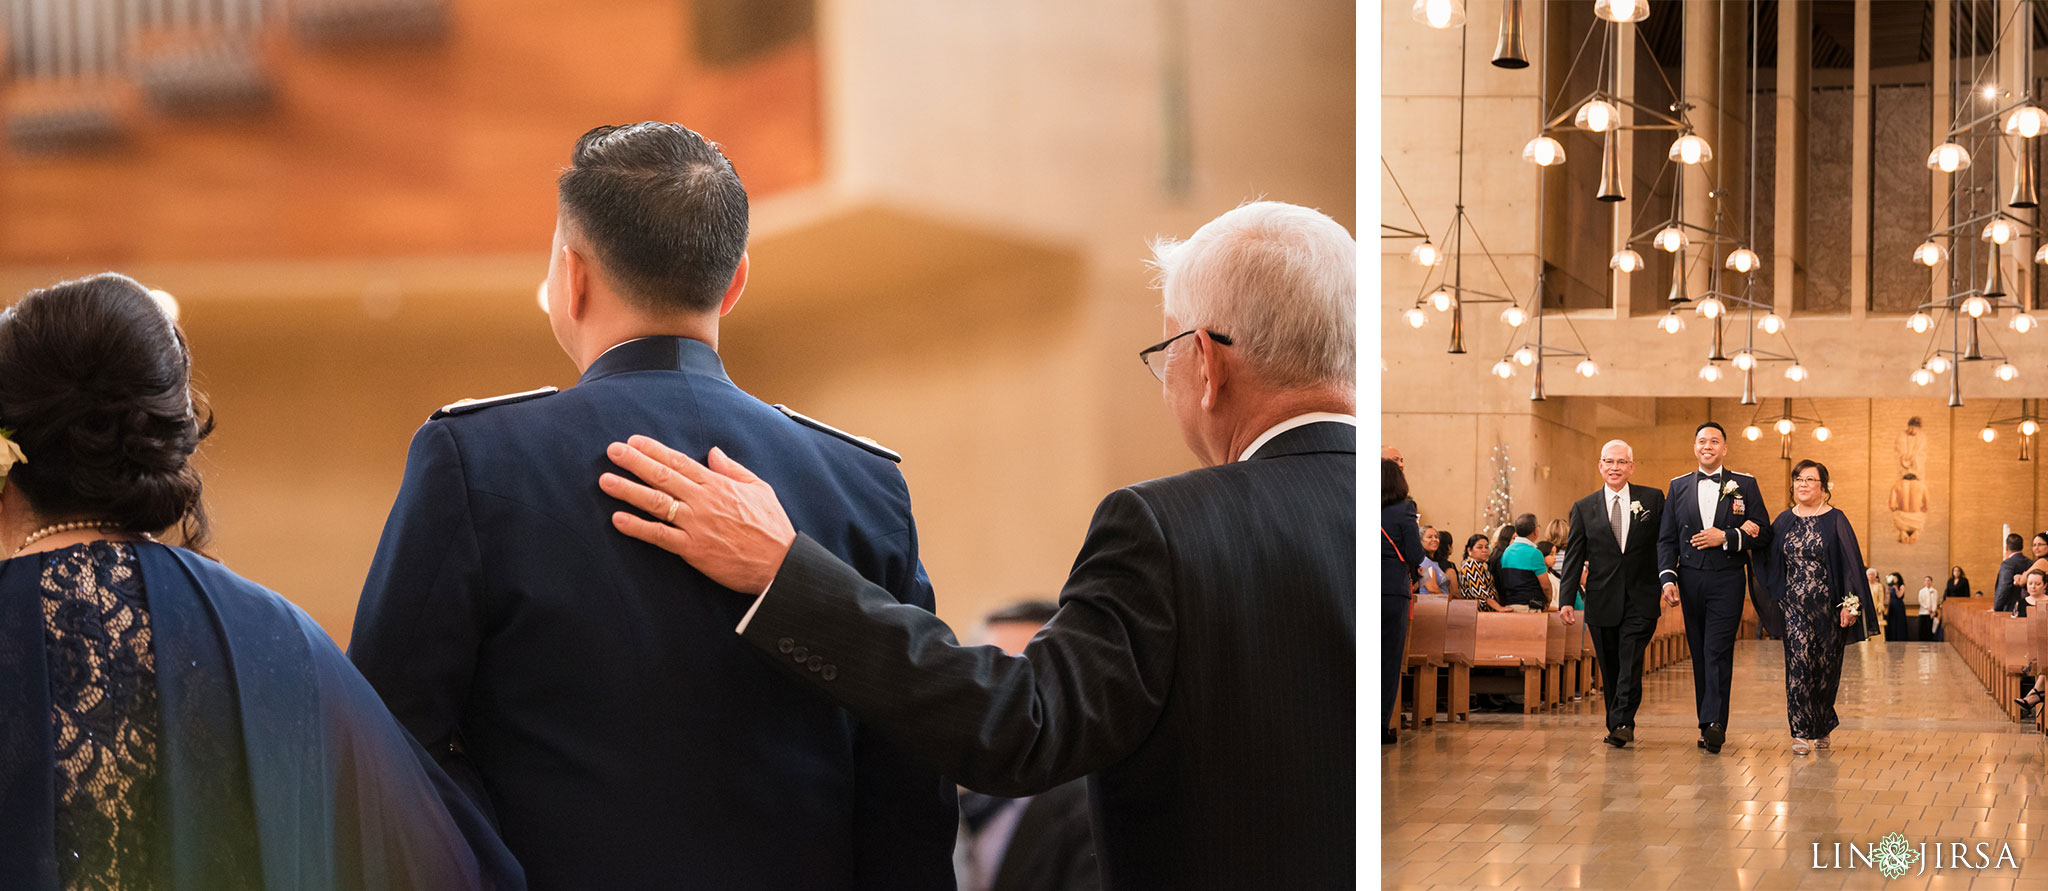 16 cathedral of our lady of angels wedding ceremony photography 1